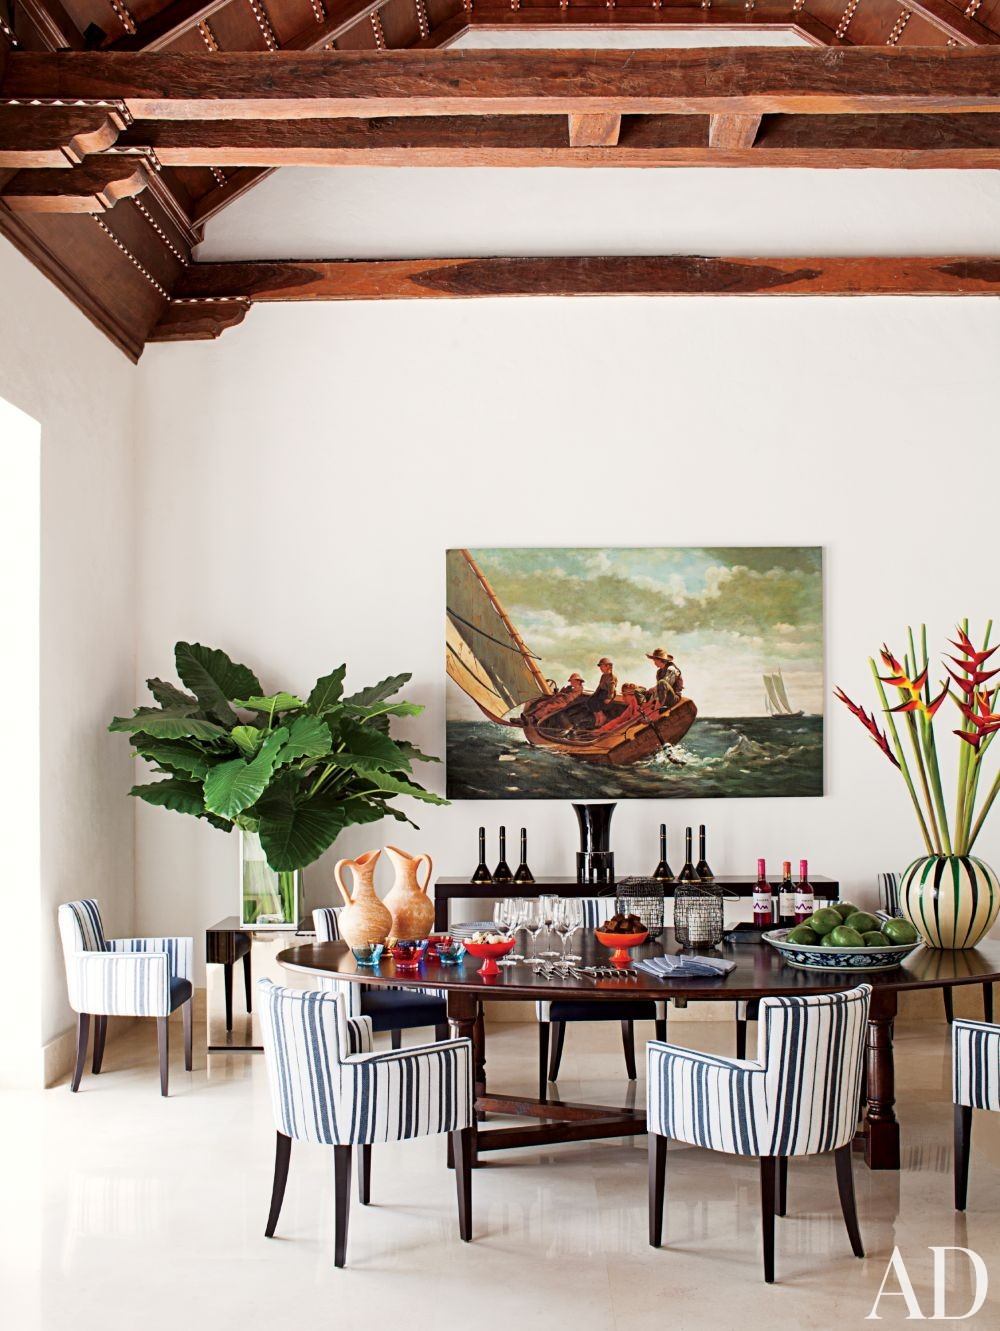 Contemporary Dining Room by Richard Mishaan Design in Cartagena, Columbia